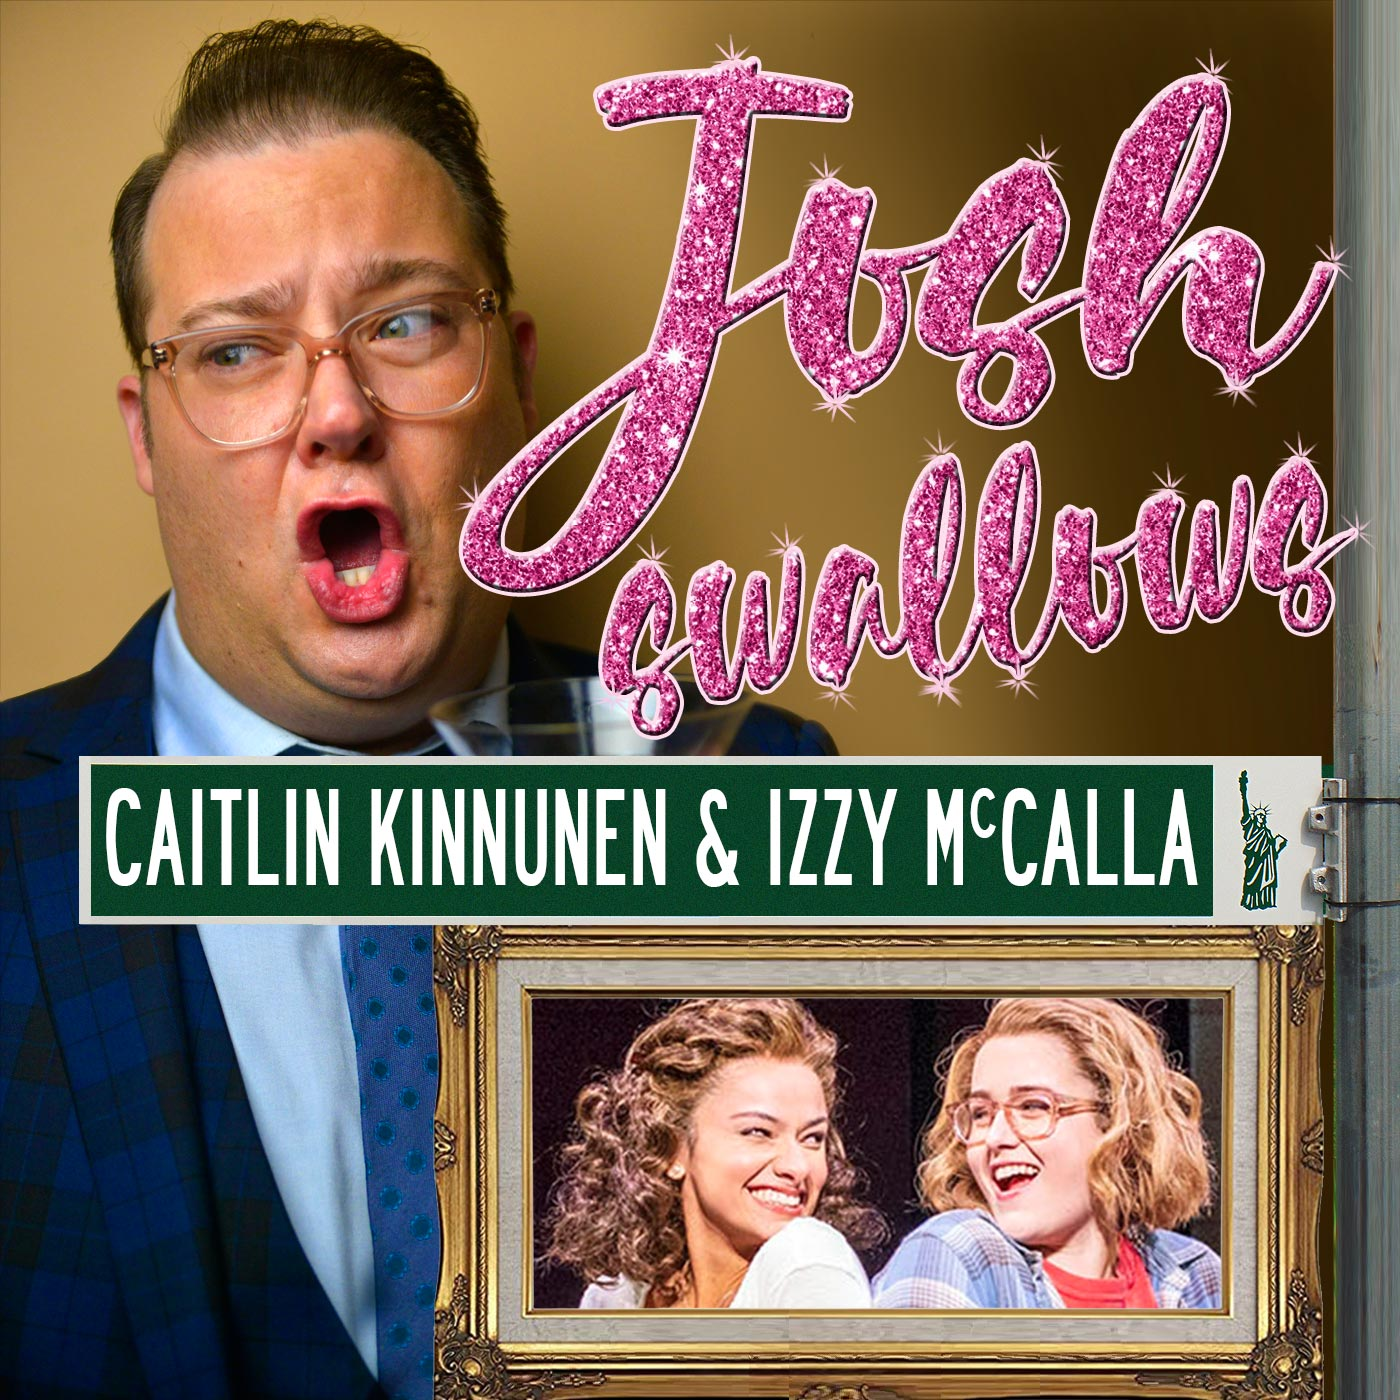 Josh Swallows Broadway Ep23 - Caitlin Kinnunen & Izzy McCalla, he's got to pitch in and put on his royal nappies!